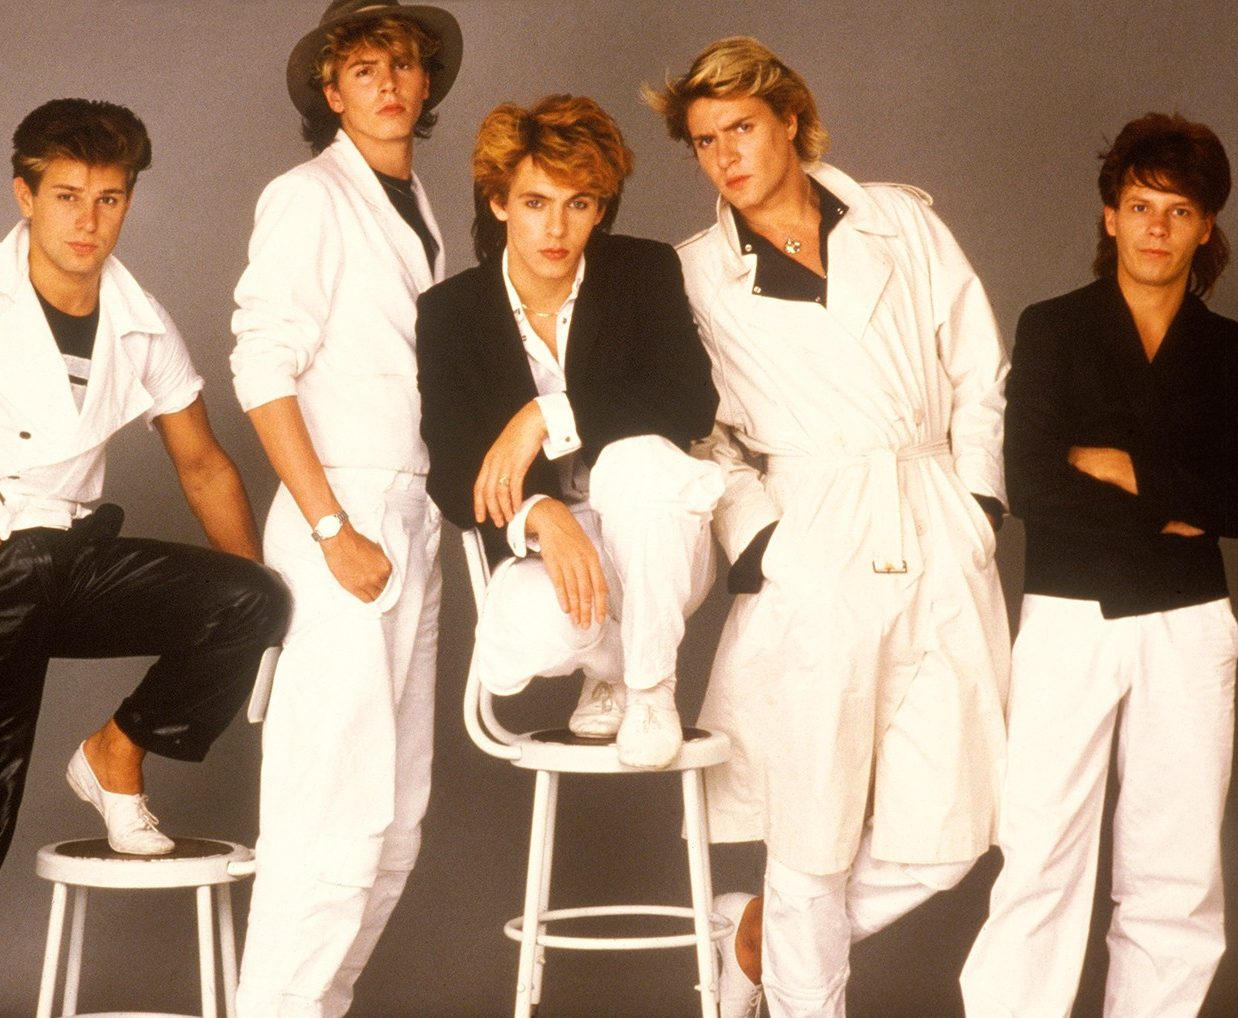 1 374 e1609336937763 20 Things You Never Knew About Duran Duran